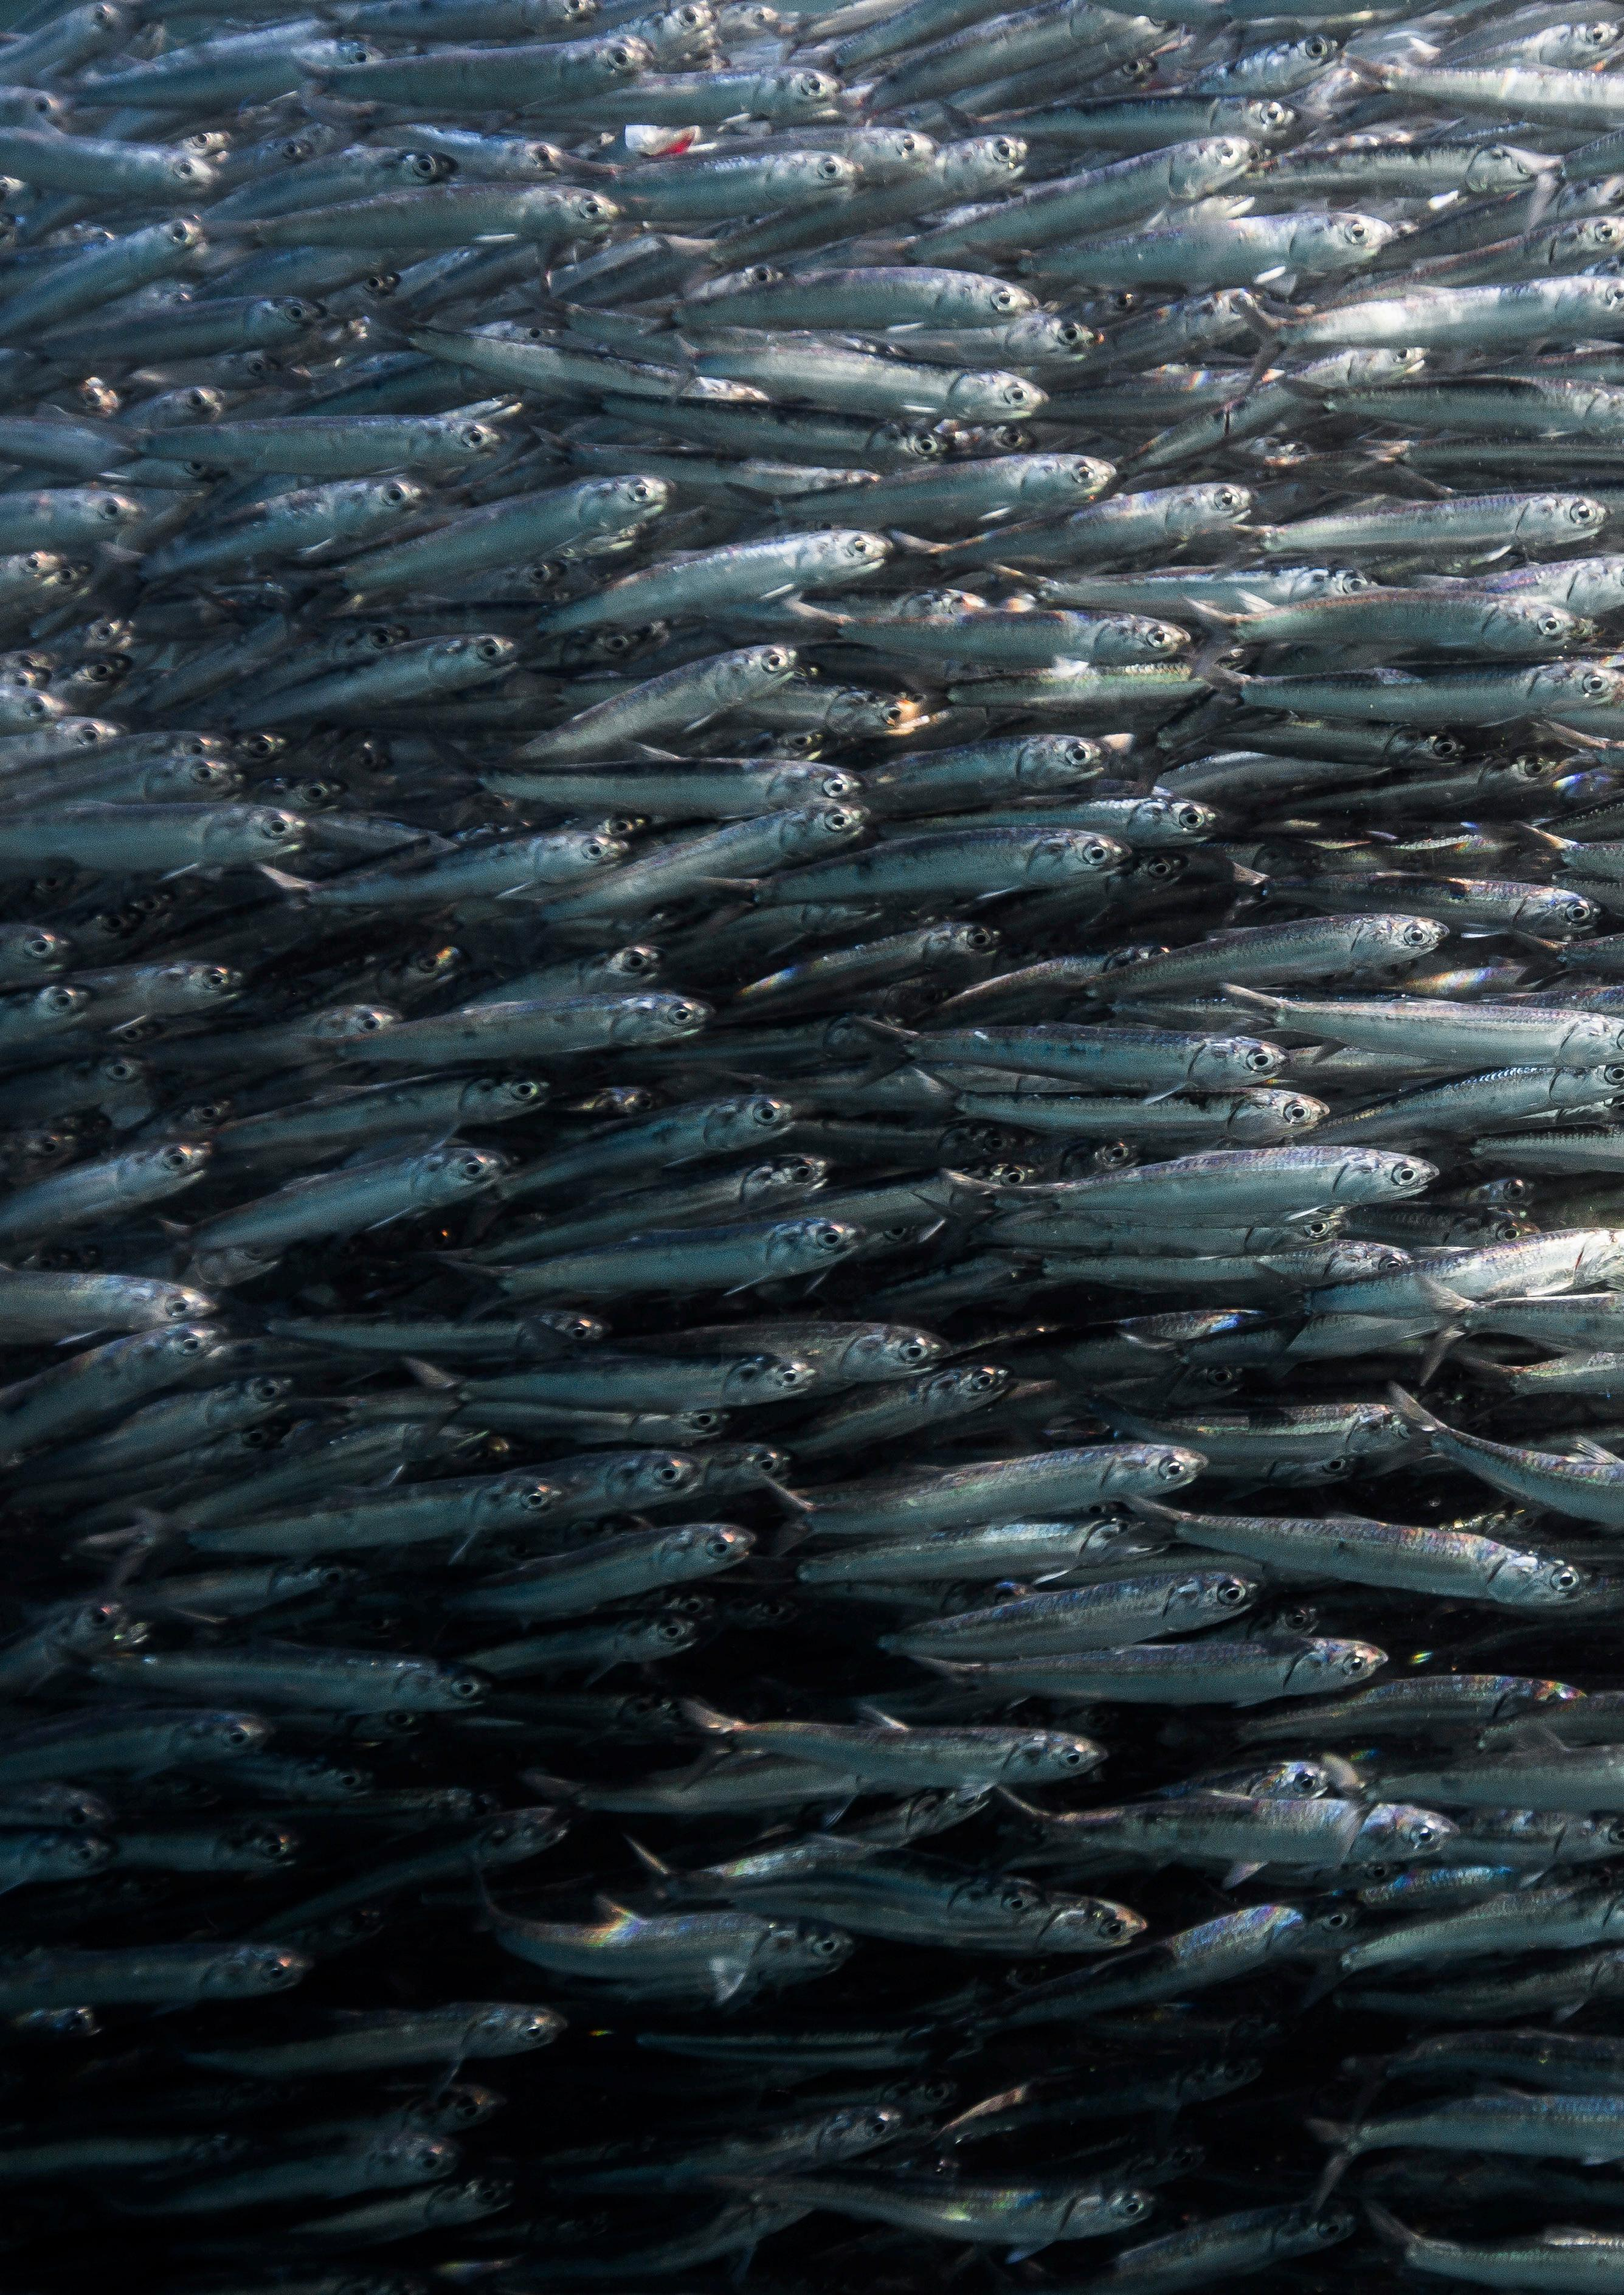 Page 78 of On the Wild Coast – Diving the Sardine Run